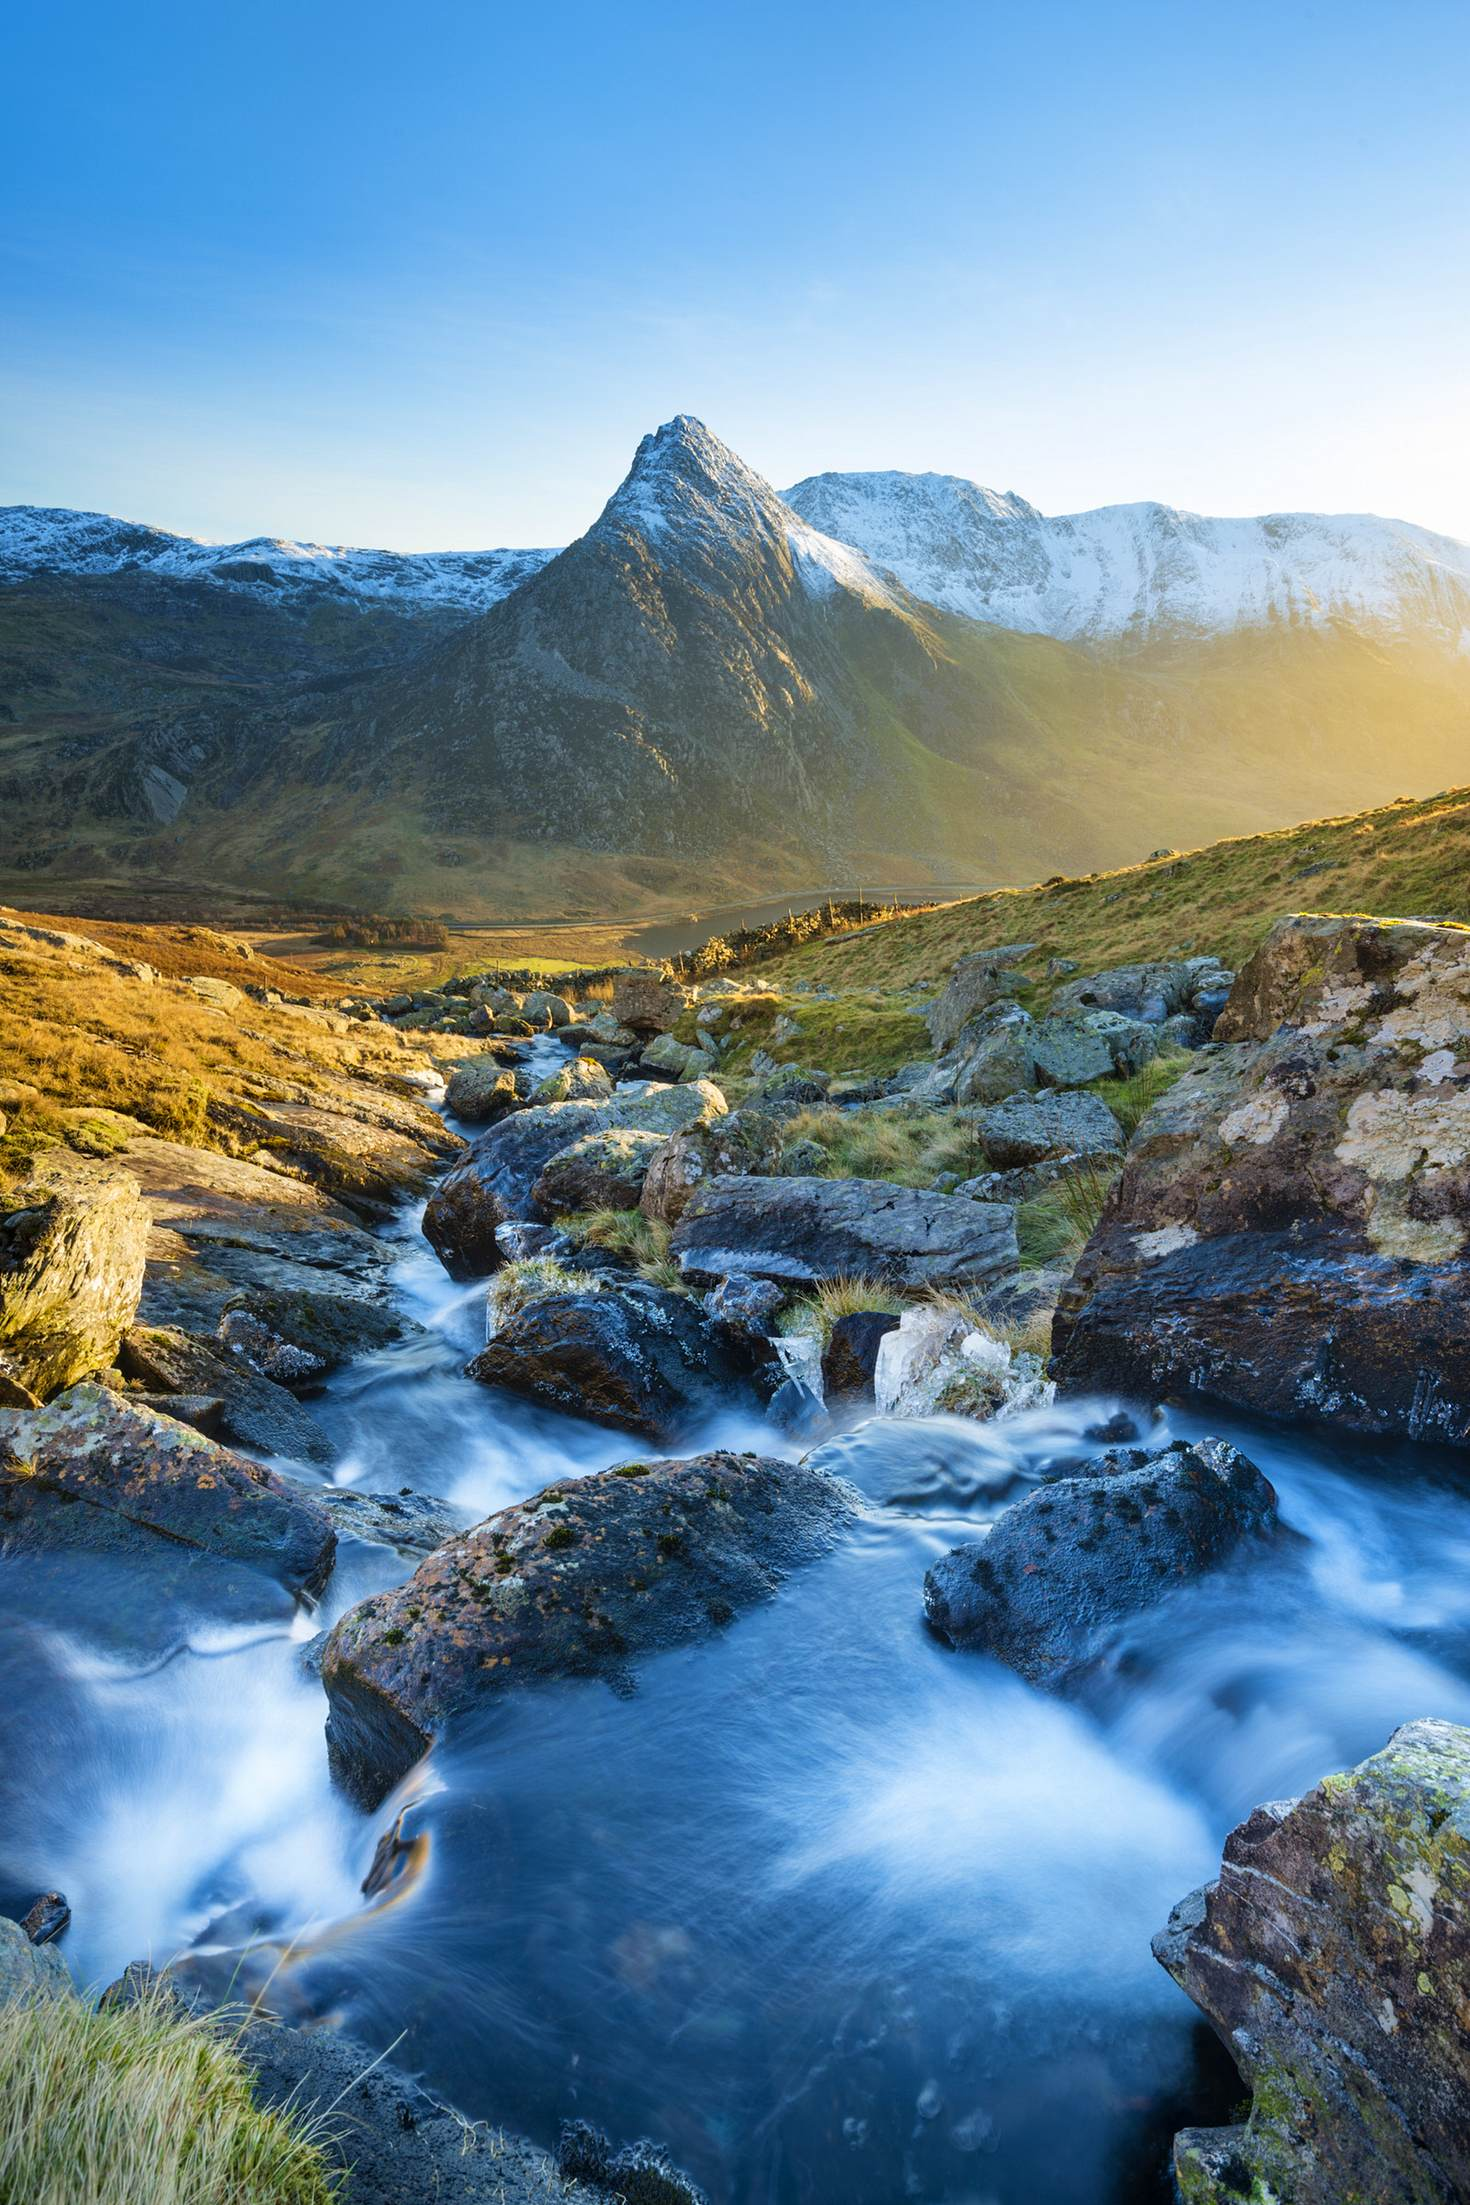 Tryfan – the name derives from the Welsh for 'three rocks', referring to the mountain's three distinct humps © Justin Foulkes / Lonely Planet